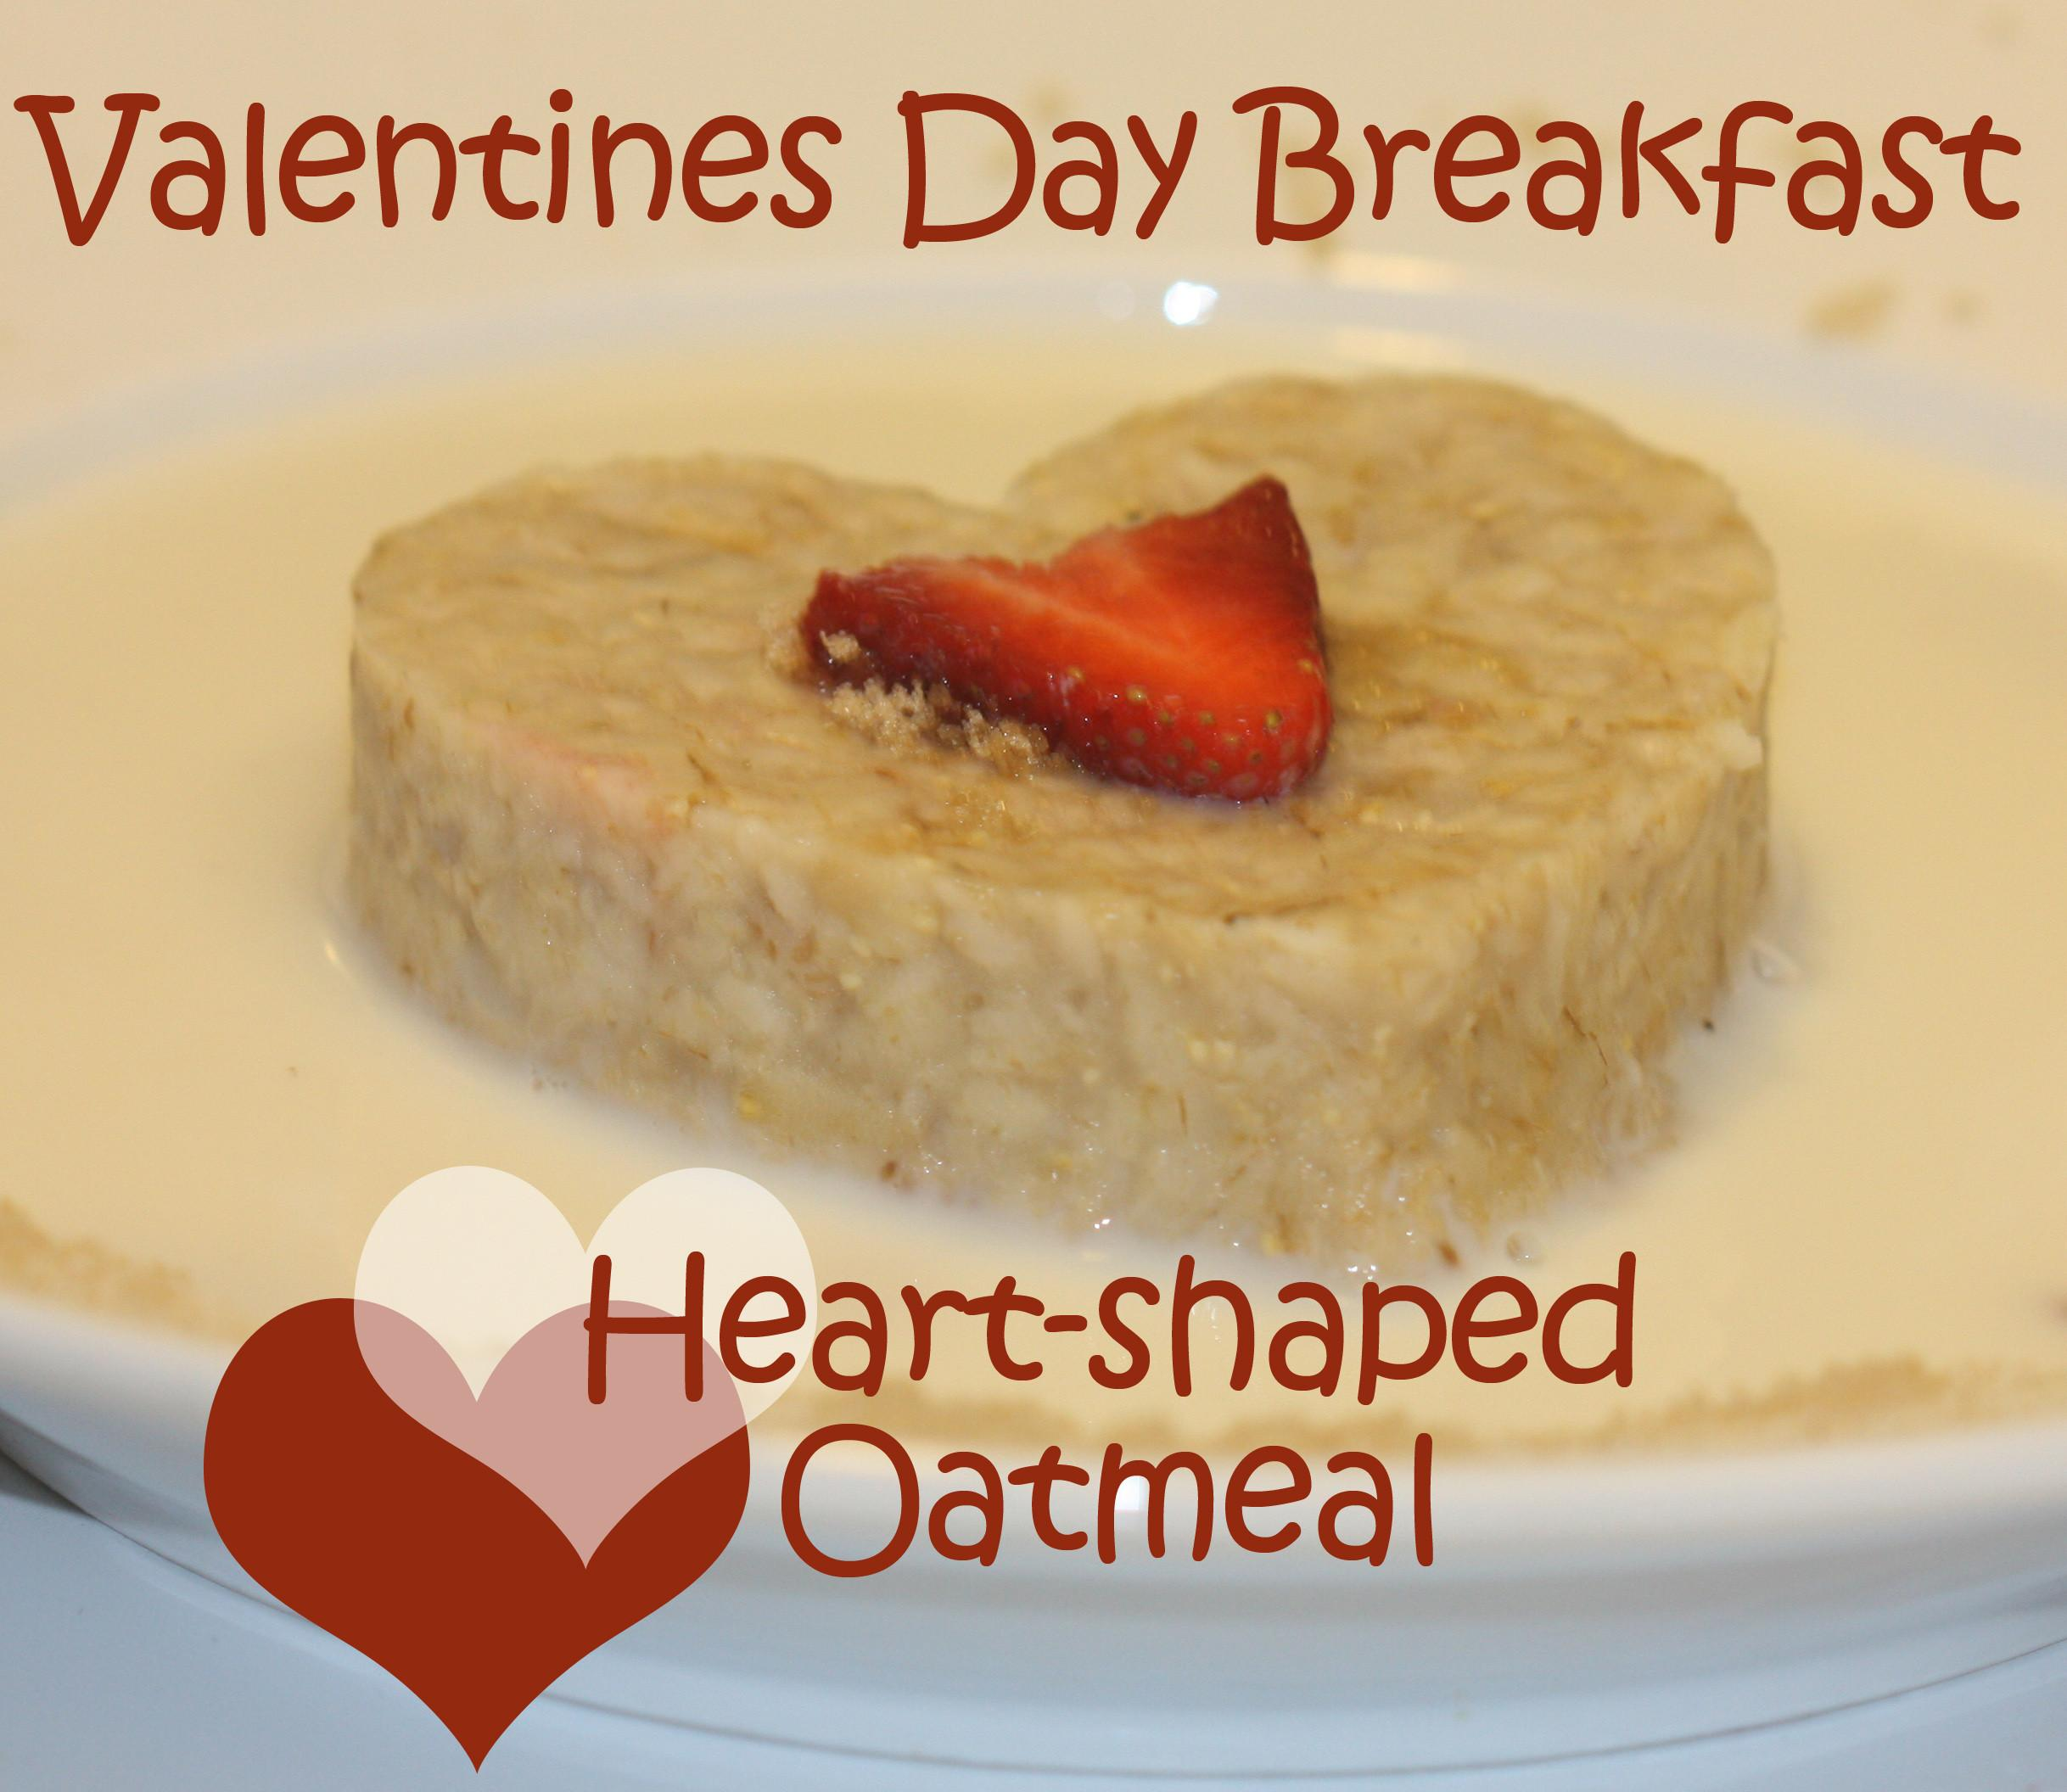 Valentines Day Breakfast Laughing Losing